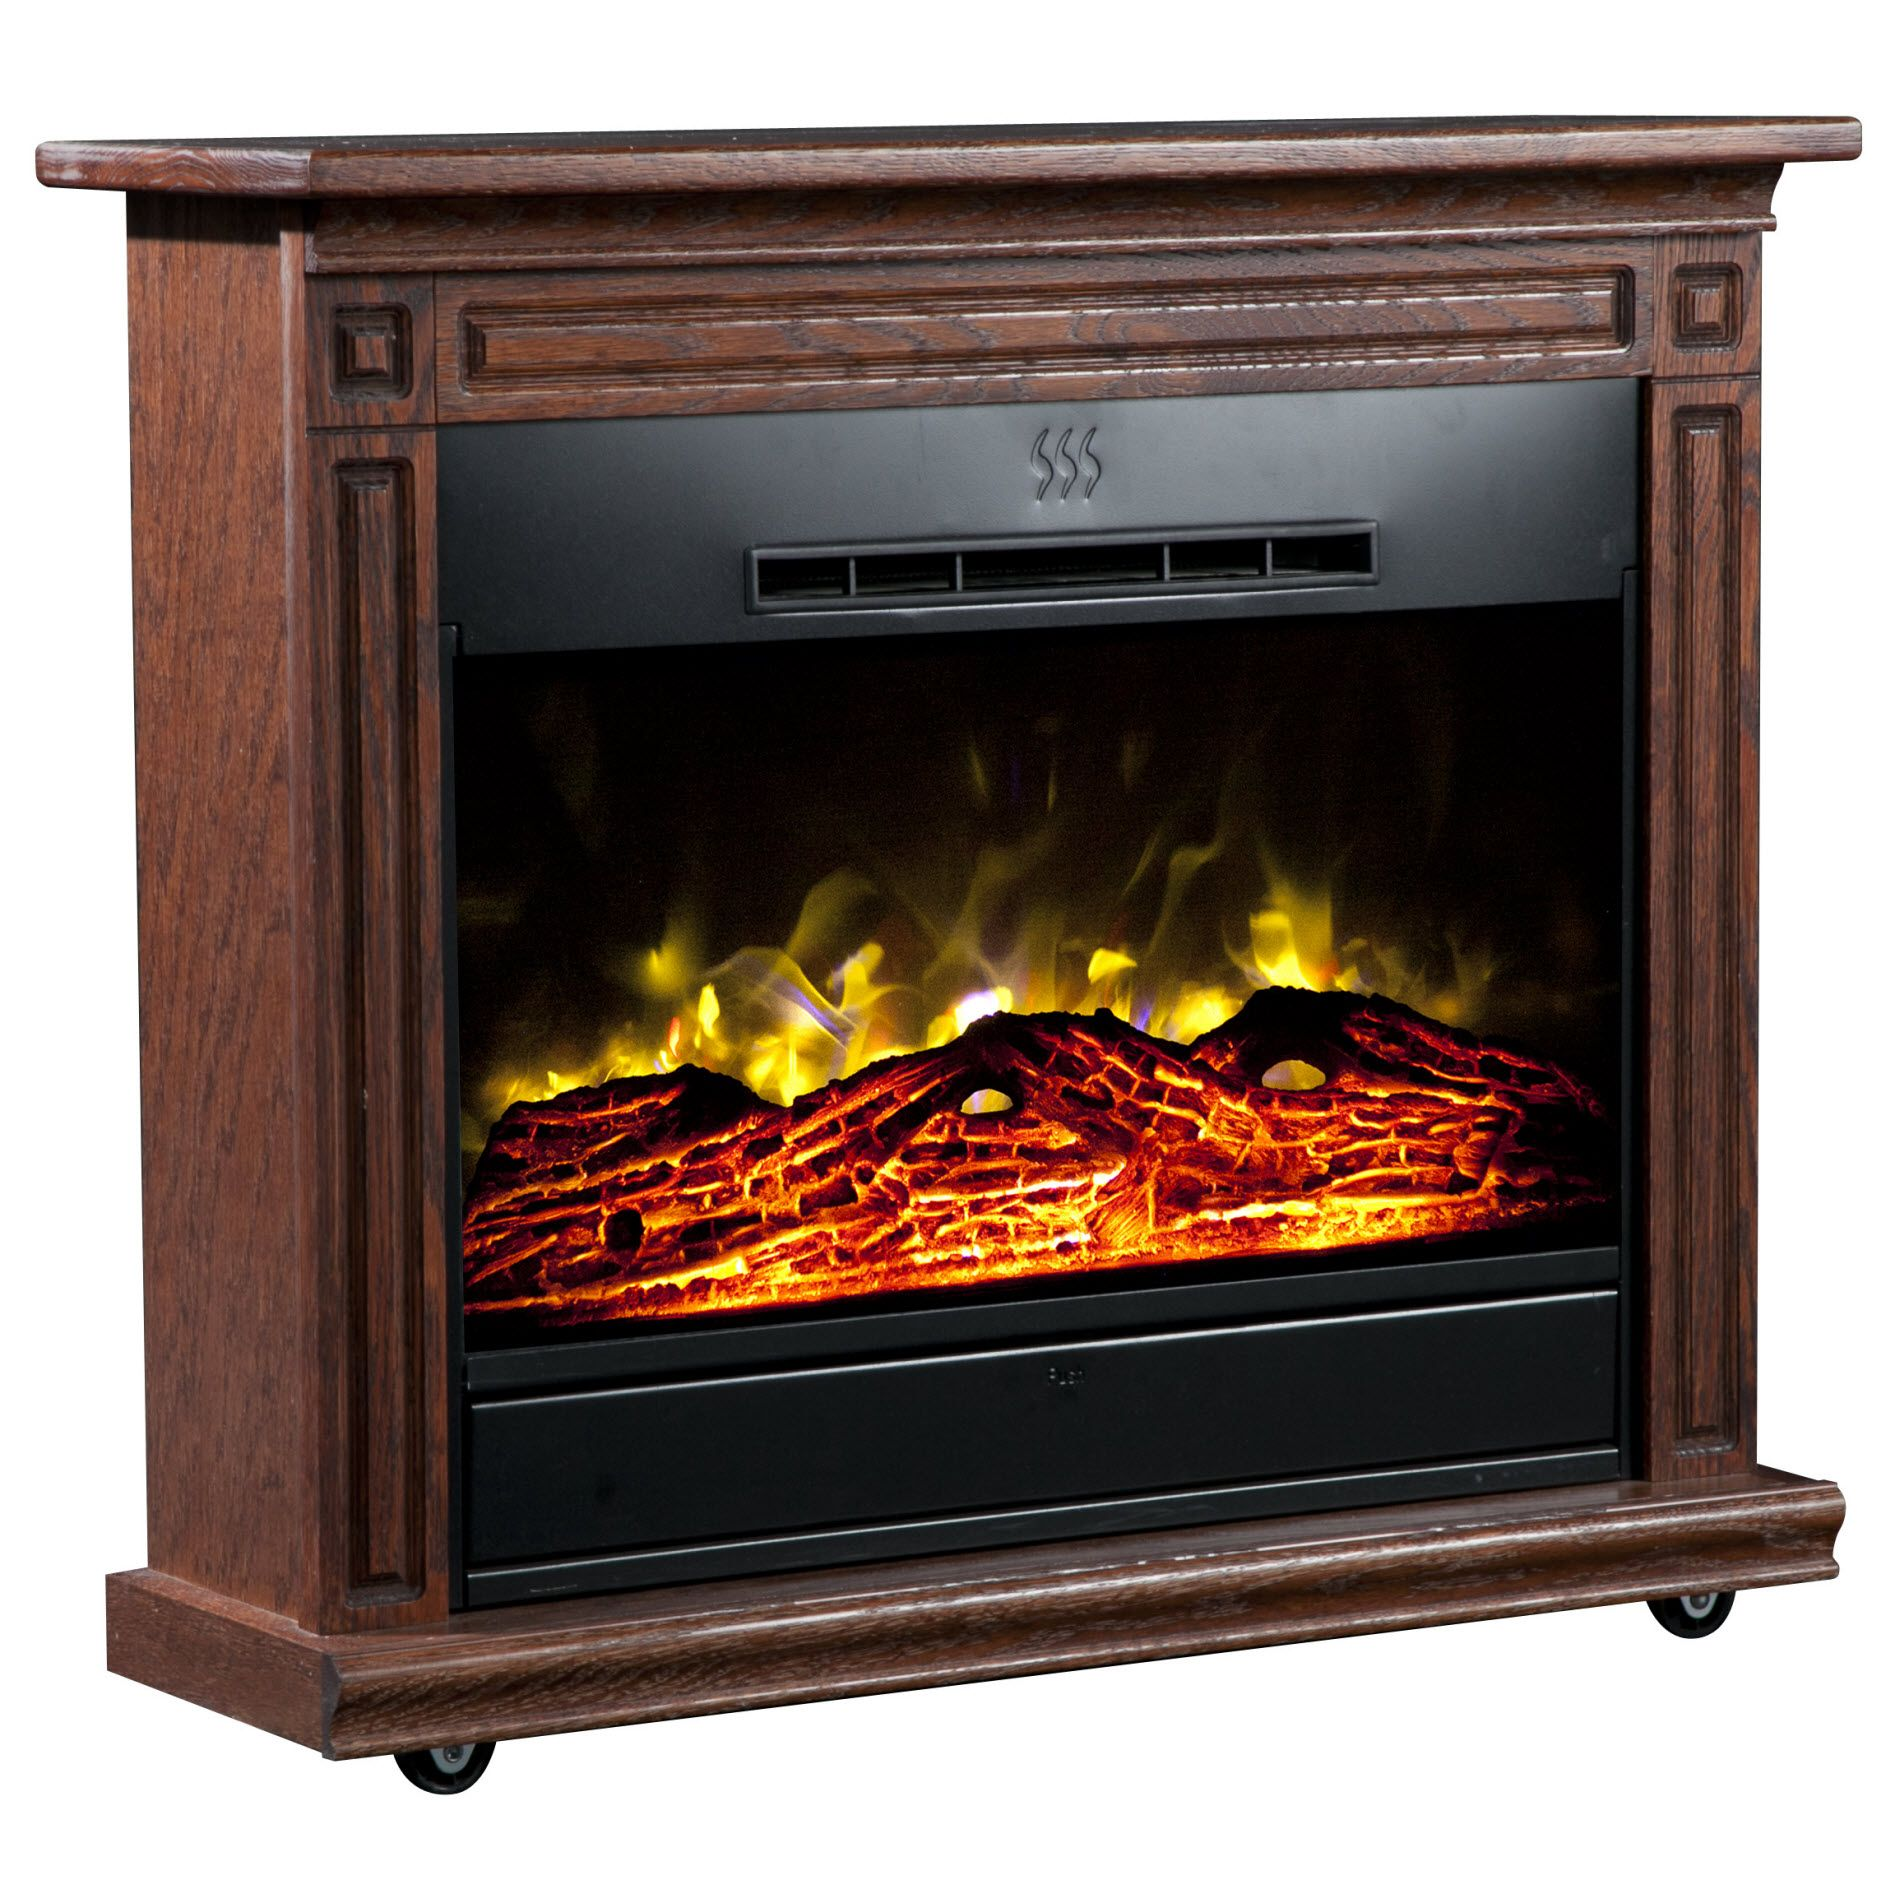 Heat Surge Roll-n-Glow Electric Fireplace with Amish-made Wood Mantle - Dark Oak